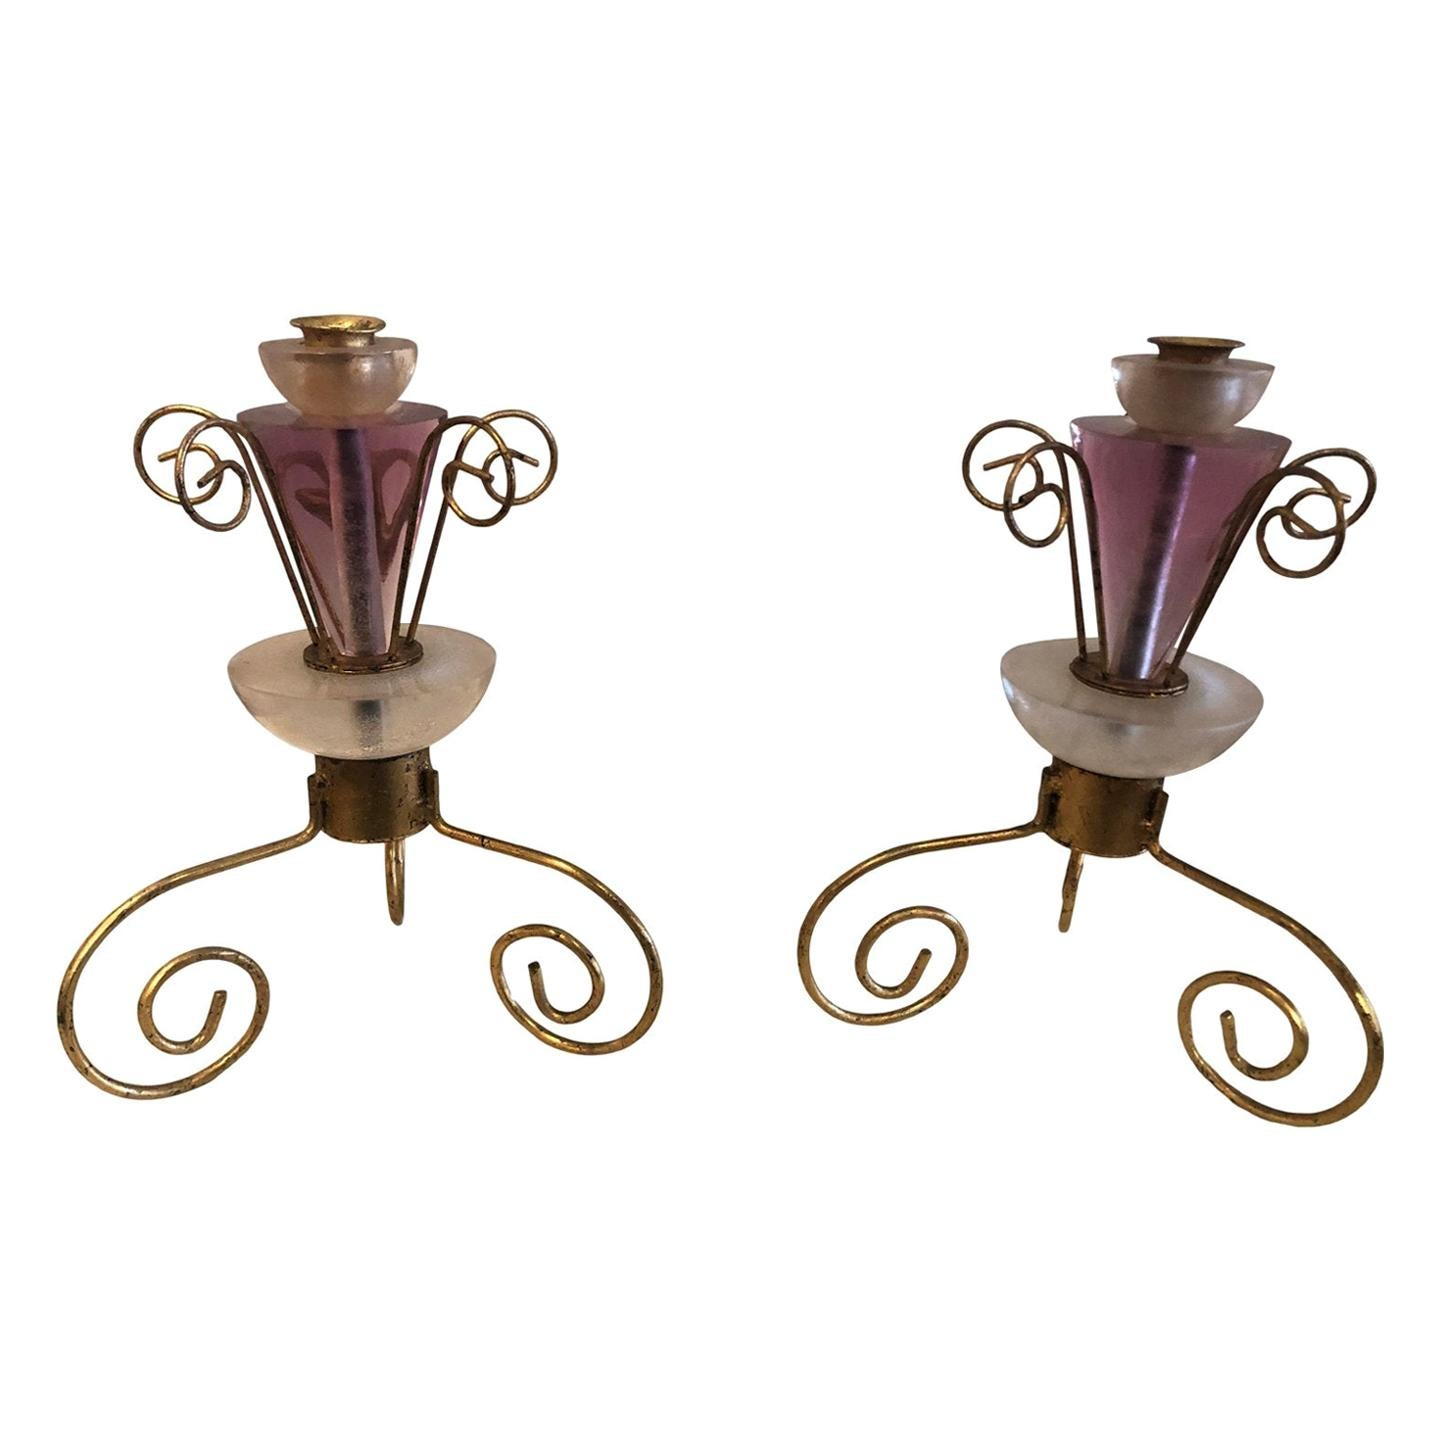 Art Deco Style Lucite and Gilt Metal Candlestick, a Pair